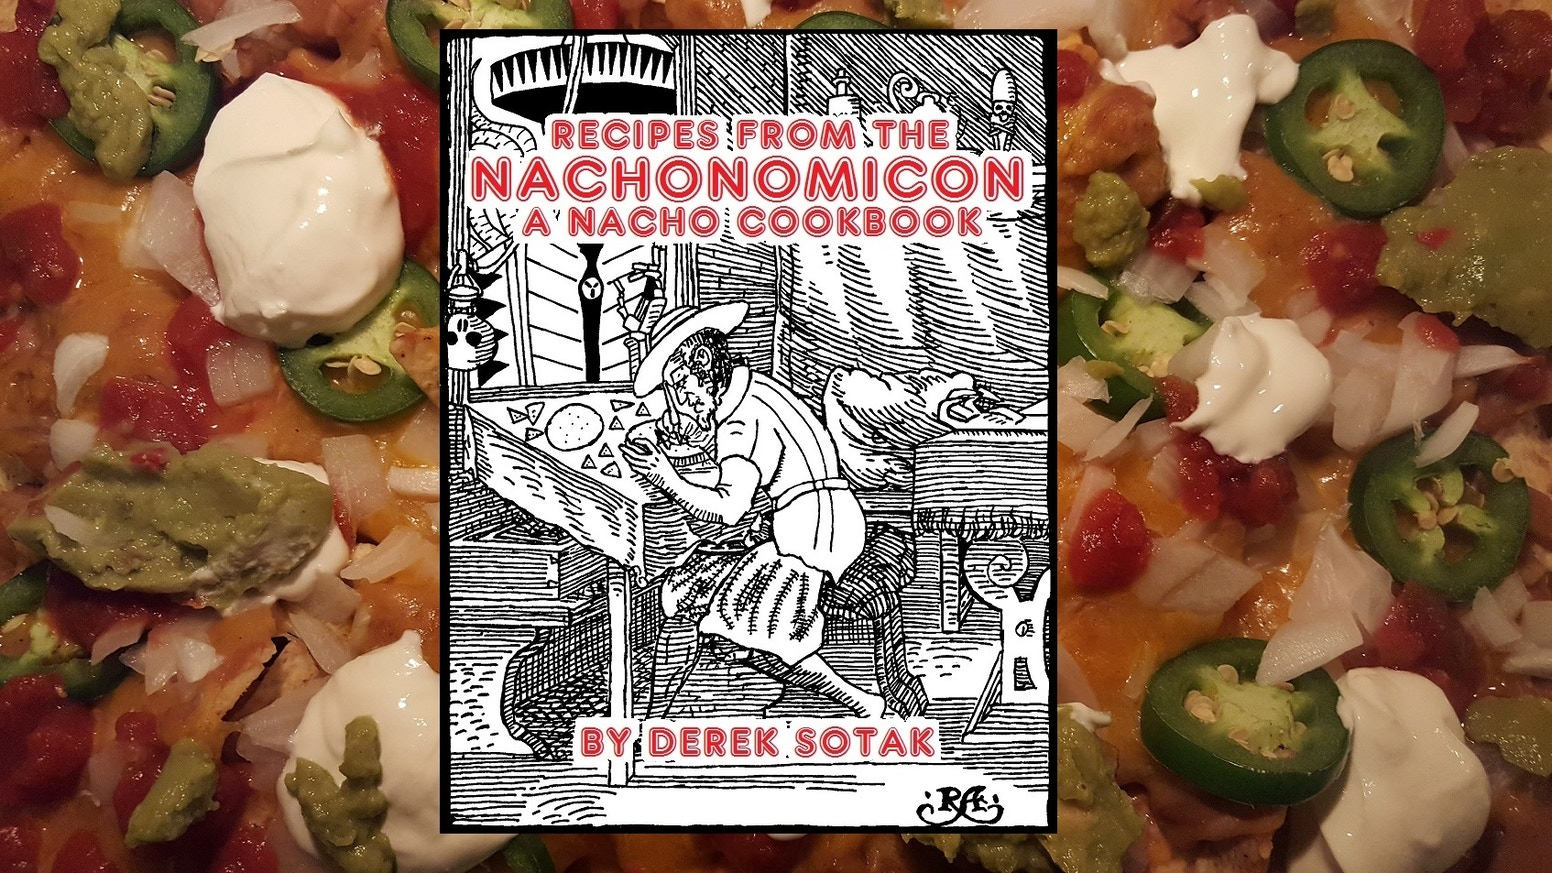 A pocket sized cookbook of the most legendary nacho recipes of all time for you to savor and consume.